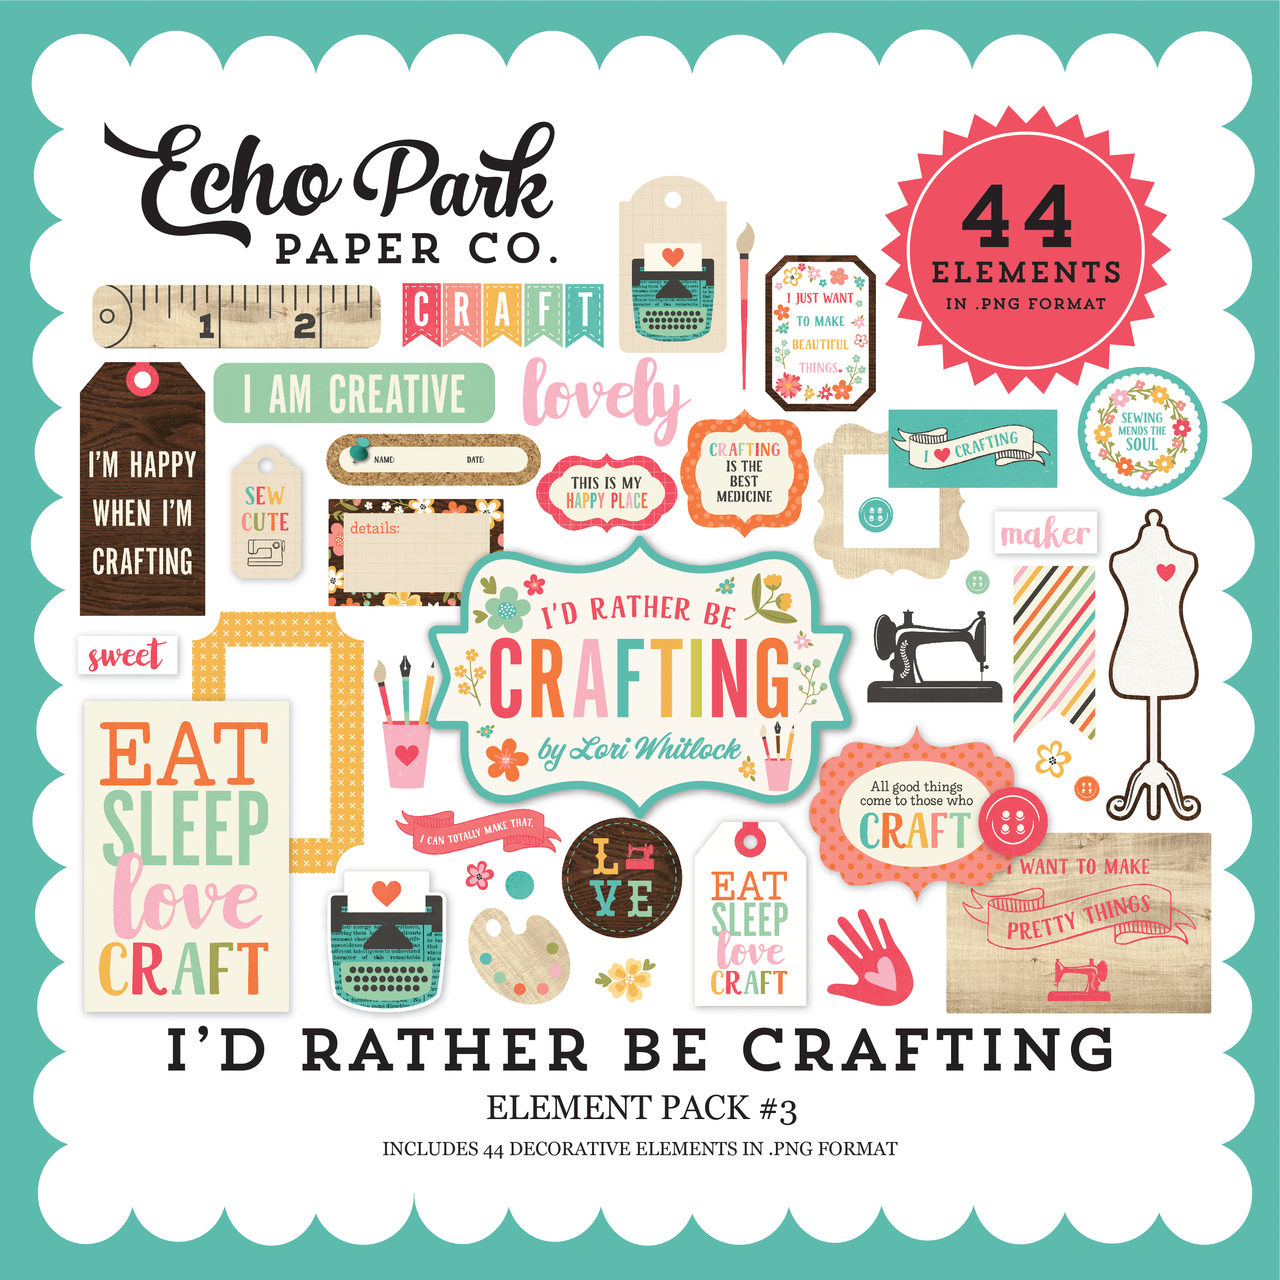 I'd Rather Be Crafting Element Pack #3